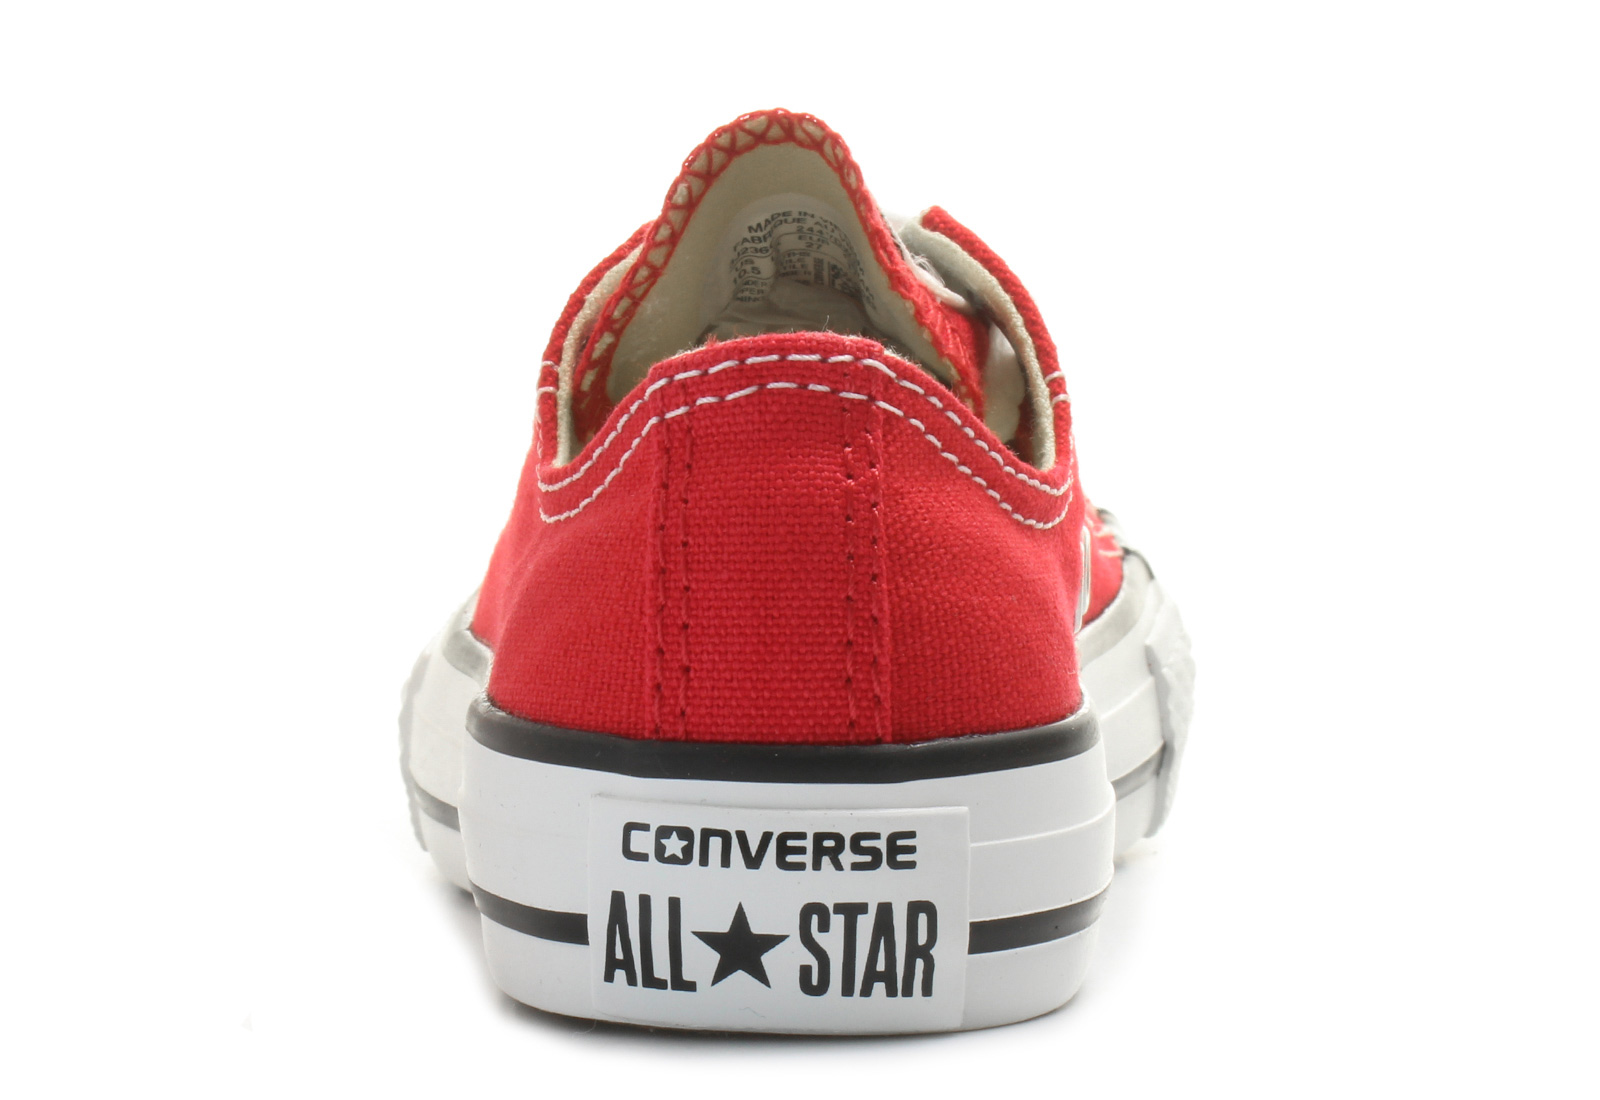 6cda14a840 Converse Sneakers - Ct As Kids Core Ox - 3J236C - Online shop for ...